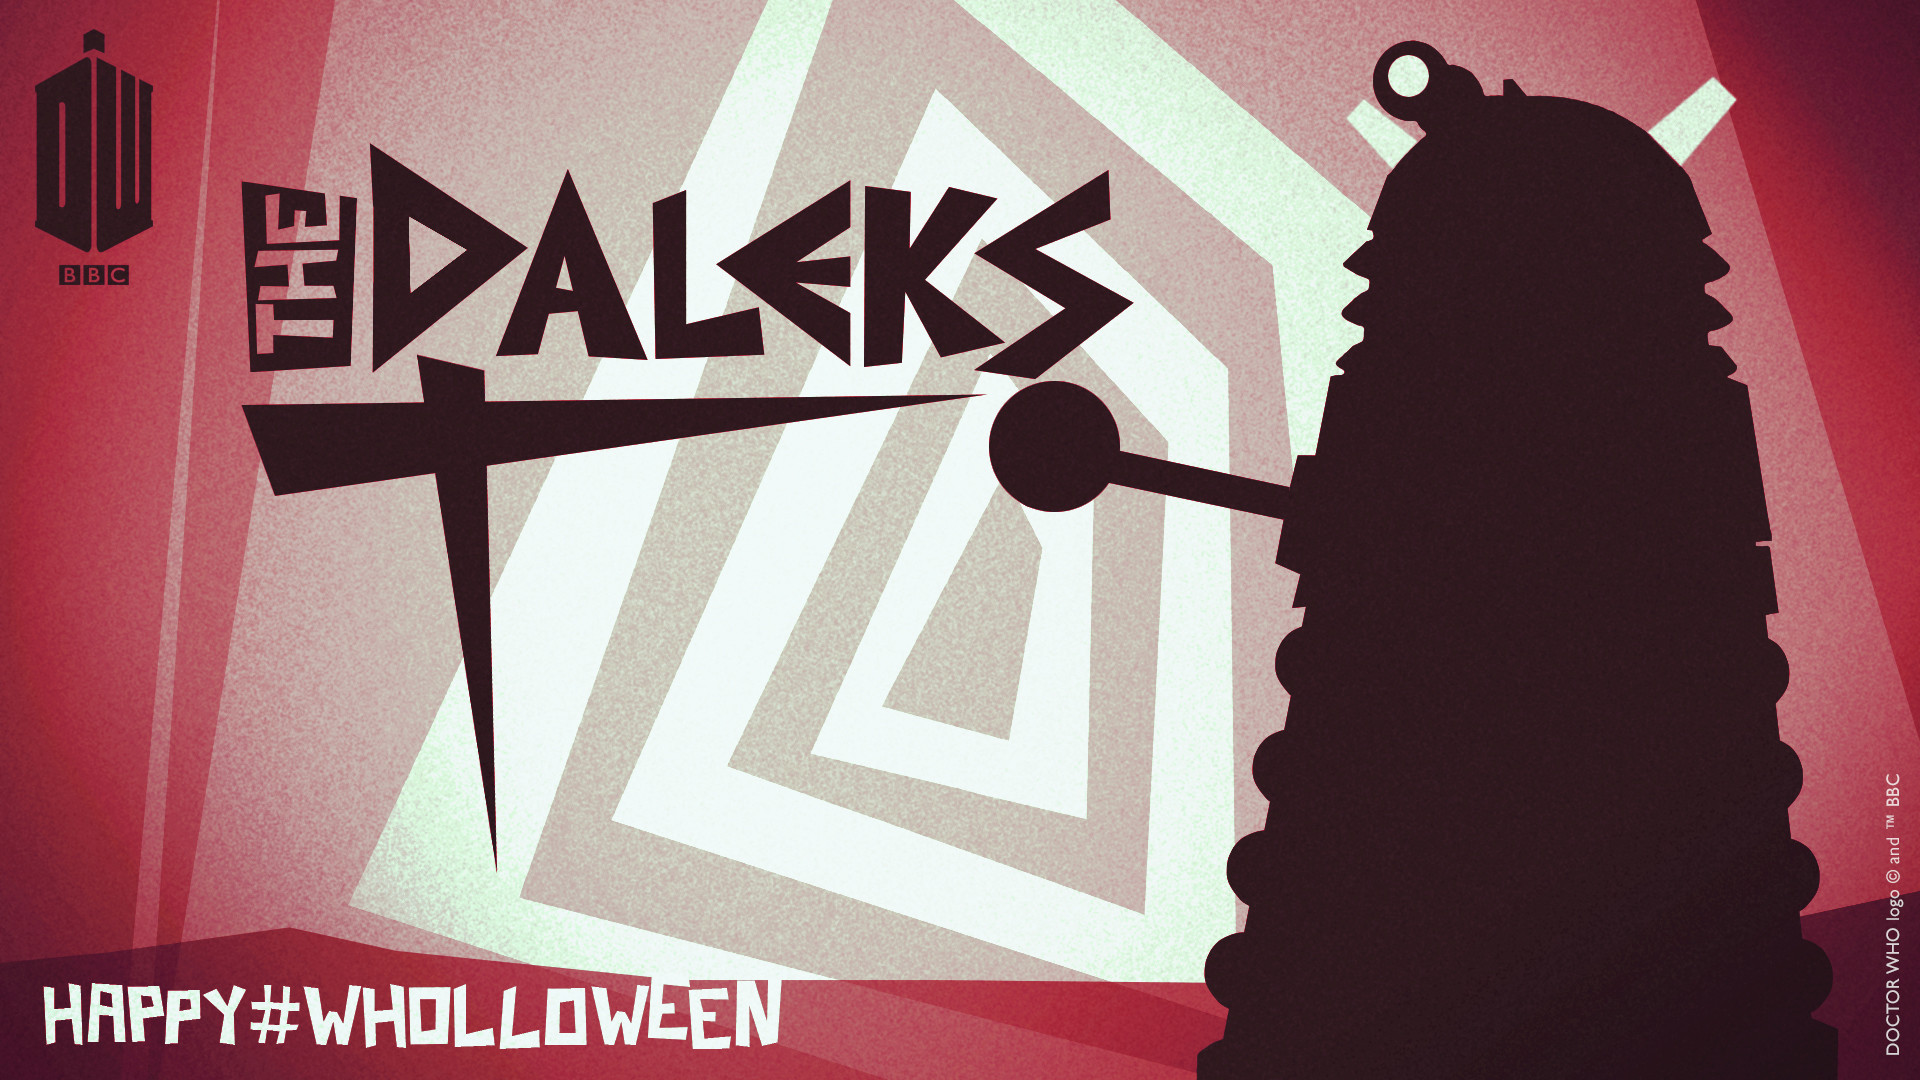 1920x1080 DesktopWallpaper_DALEKS. DesktopWallpaper_SILENCE. DesktopWallpaper_ANGELS